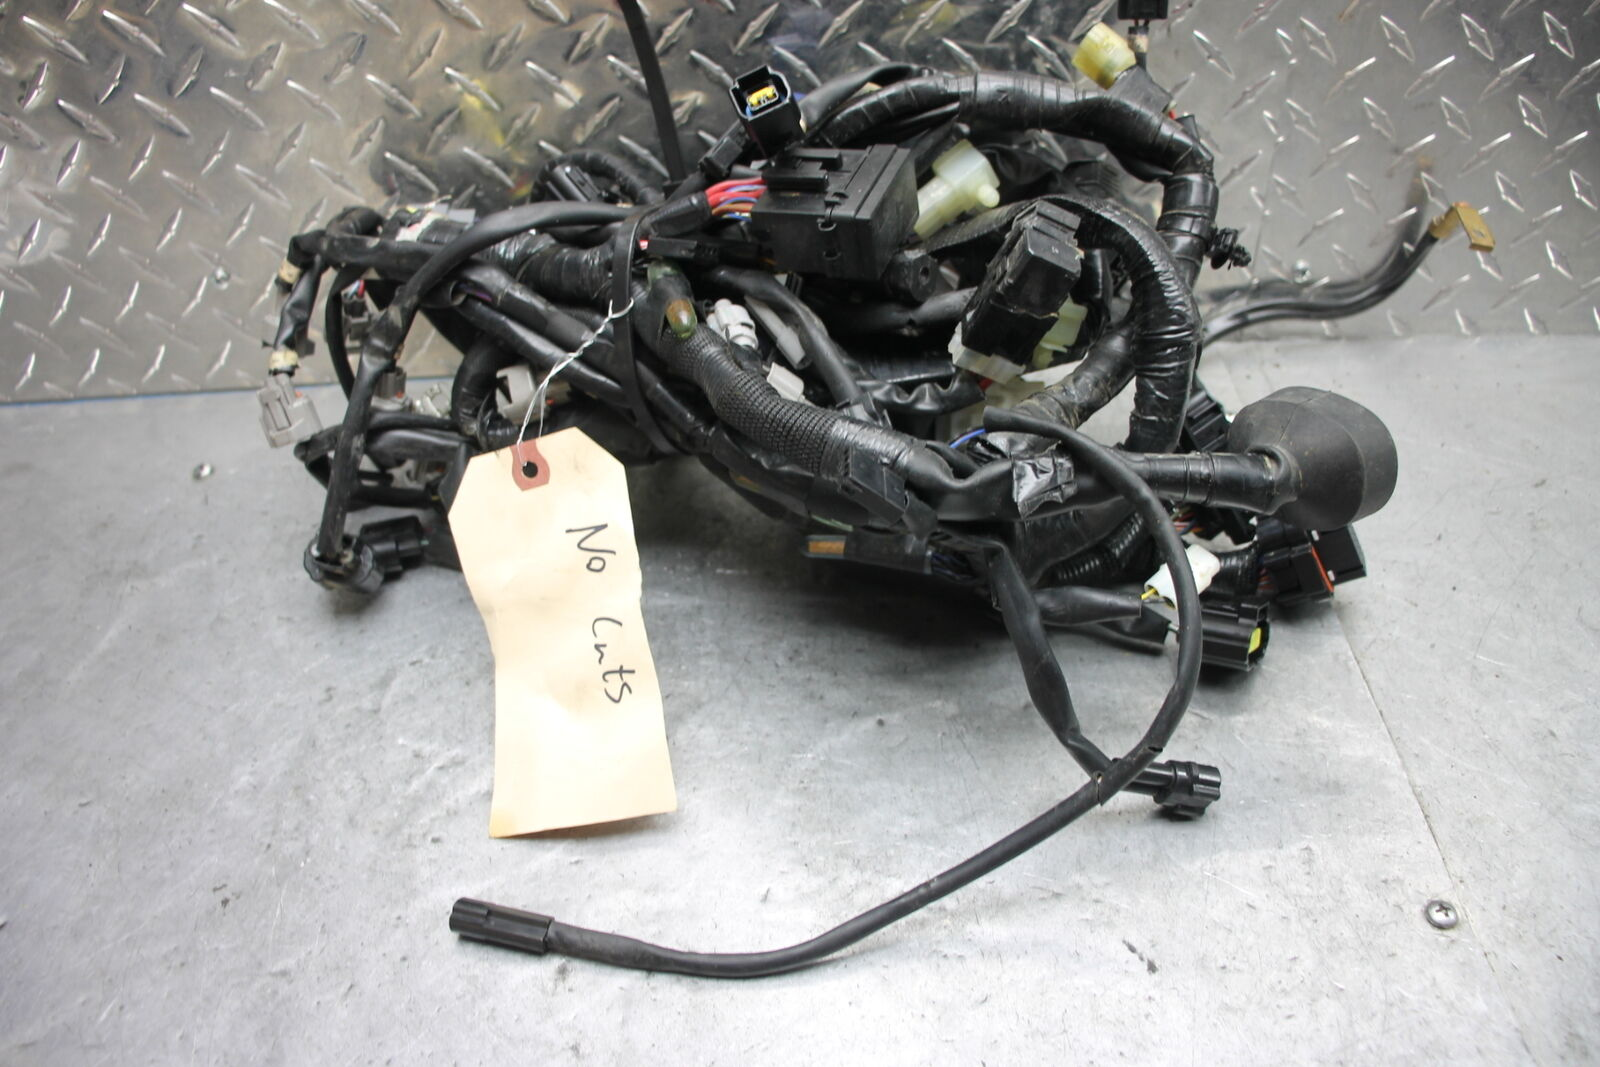 15 17 Yamaha Yzf R1 Main Engine Wiring Harness Loom 11149 1 Of 9only Available